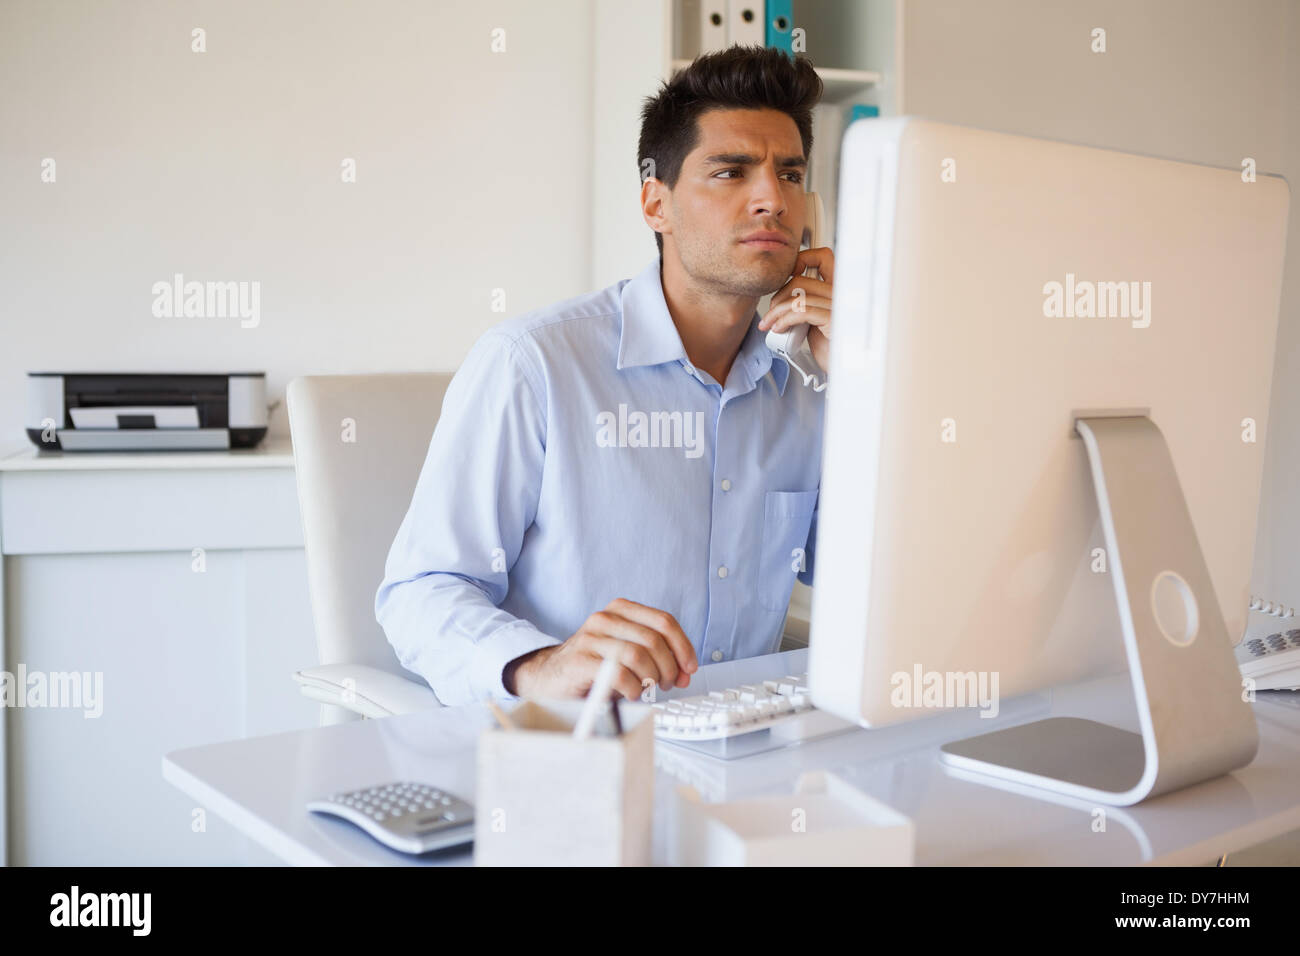 Casual businessman on the telephone at desk - Stock Image